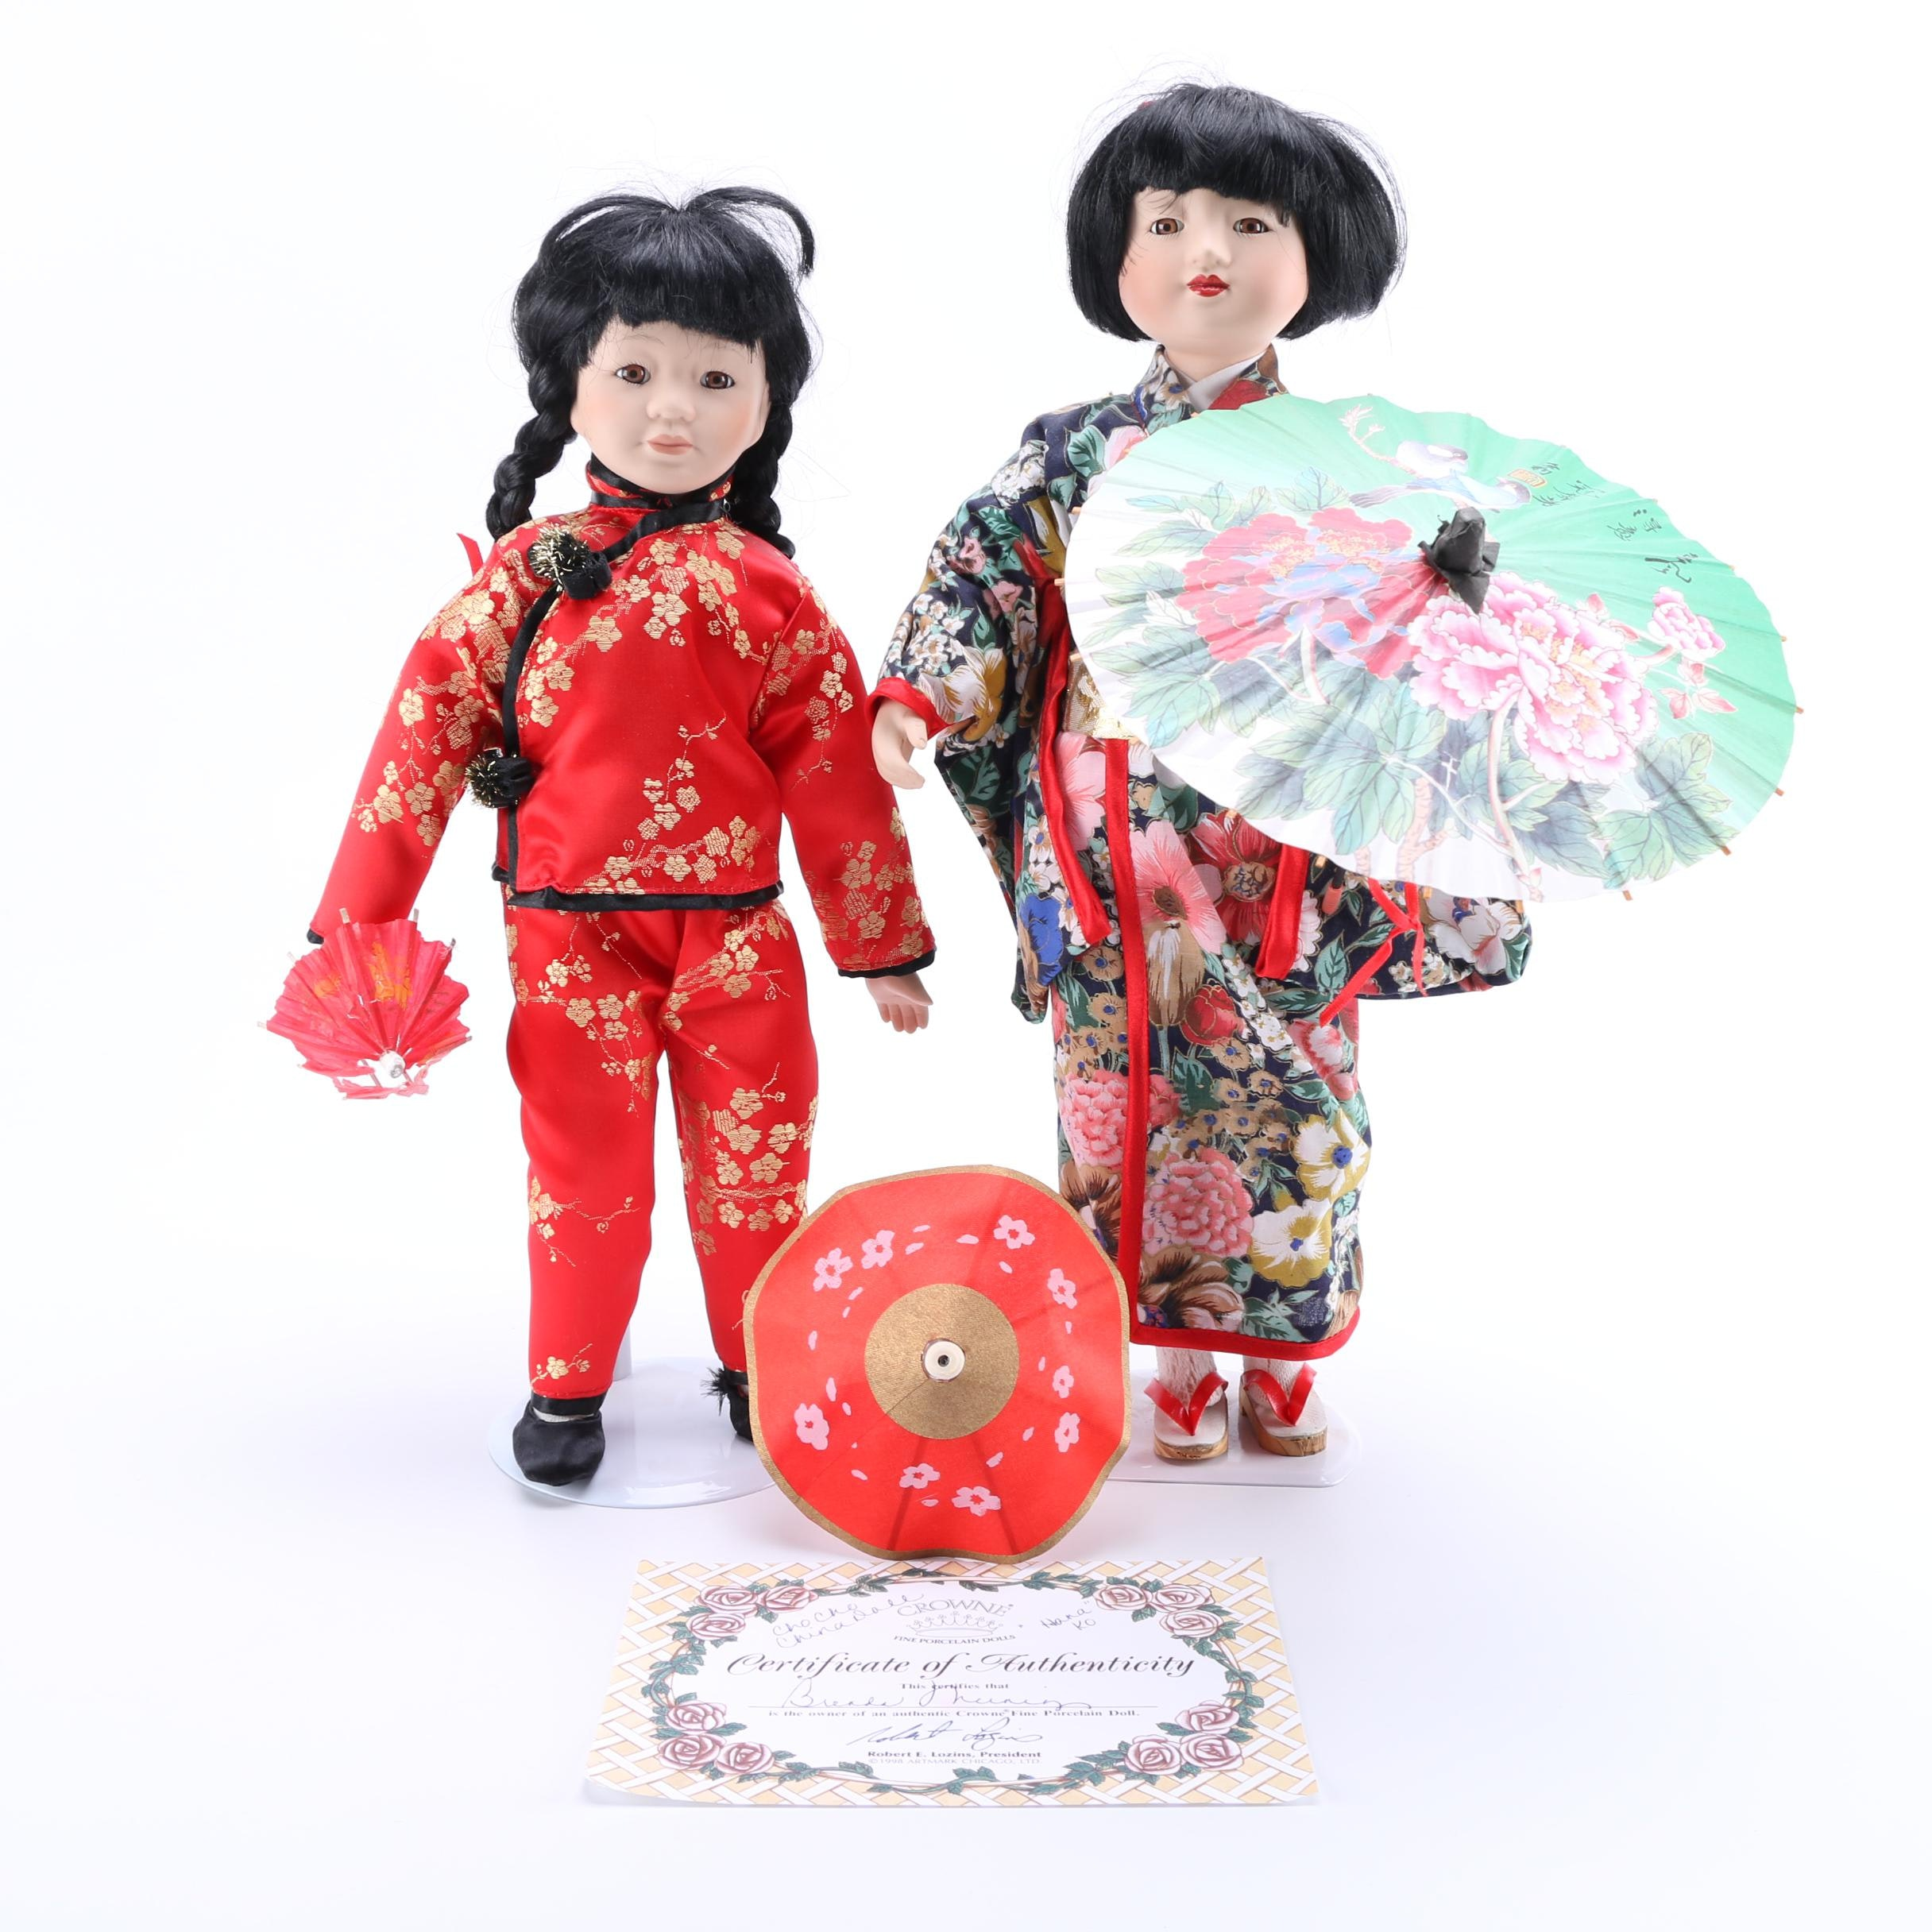 Crowne Chinese and Japanese Styled Porcelain Dolls